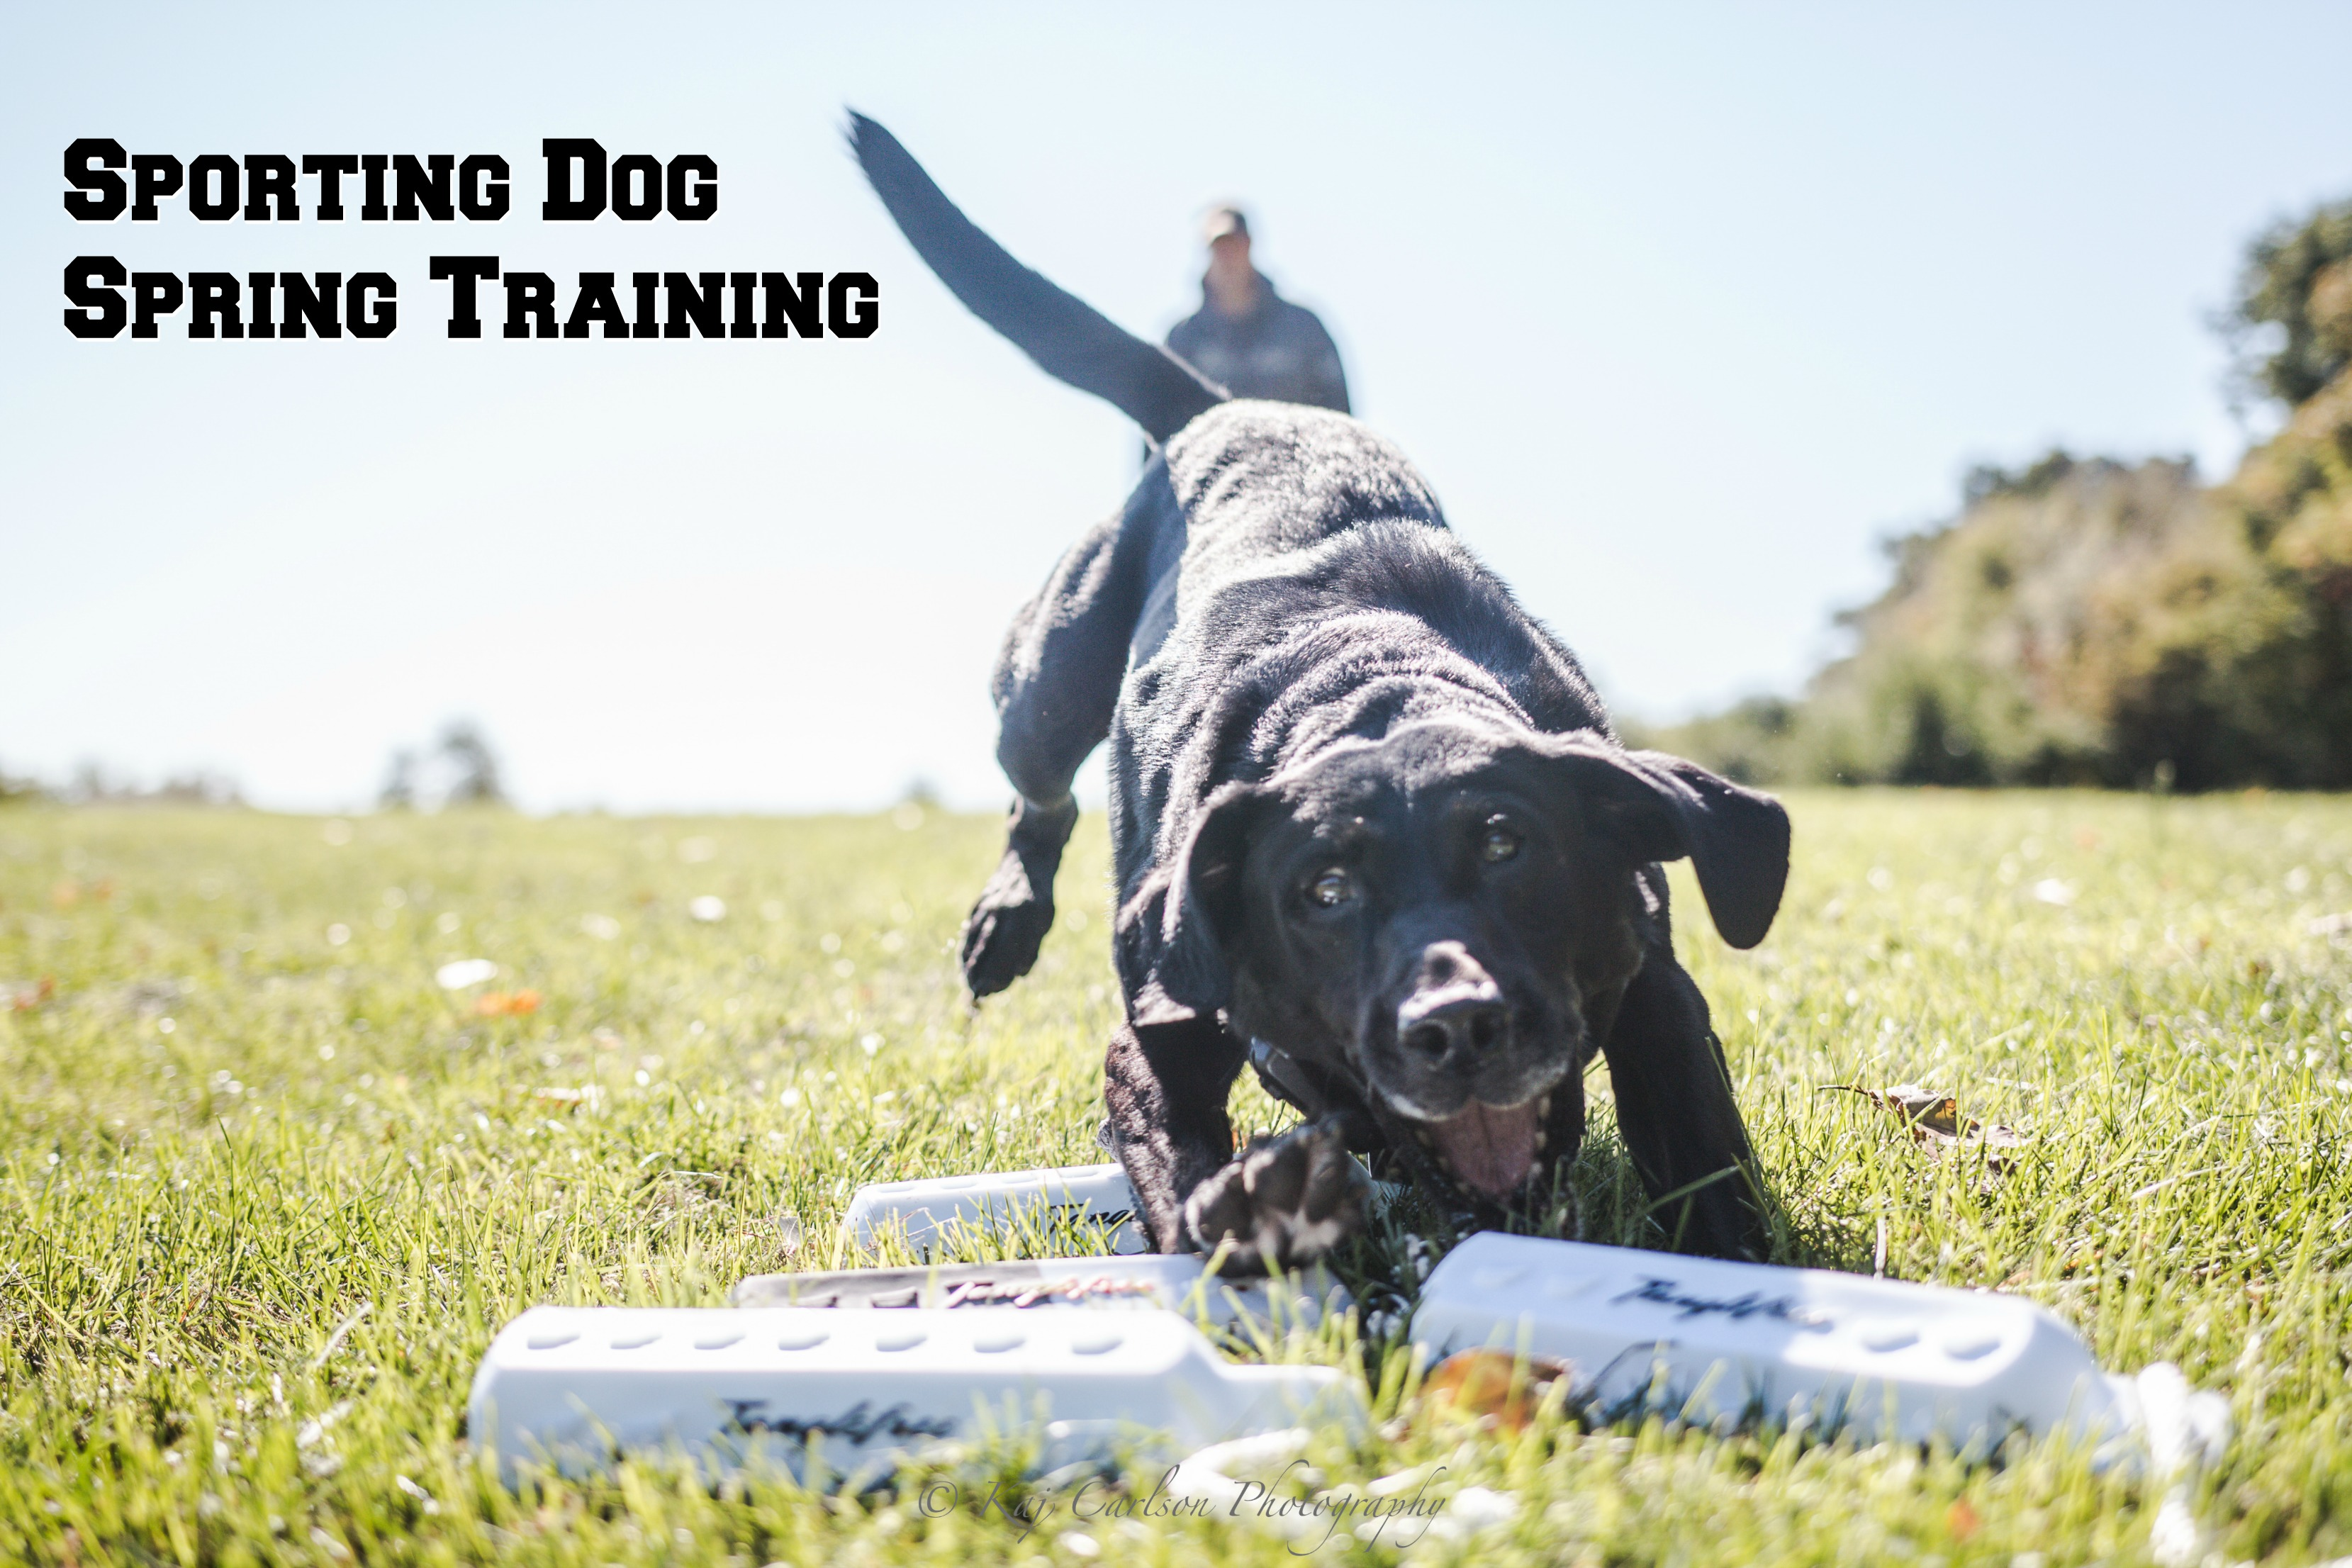 DU Newsletter May 2018: The Sporting Dog Spring Training Issue